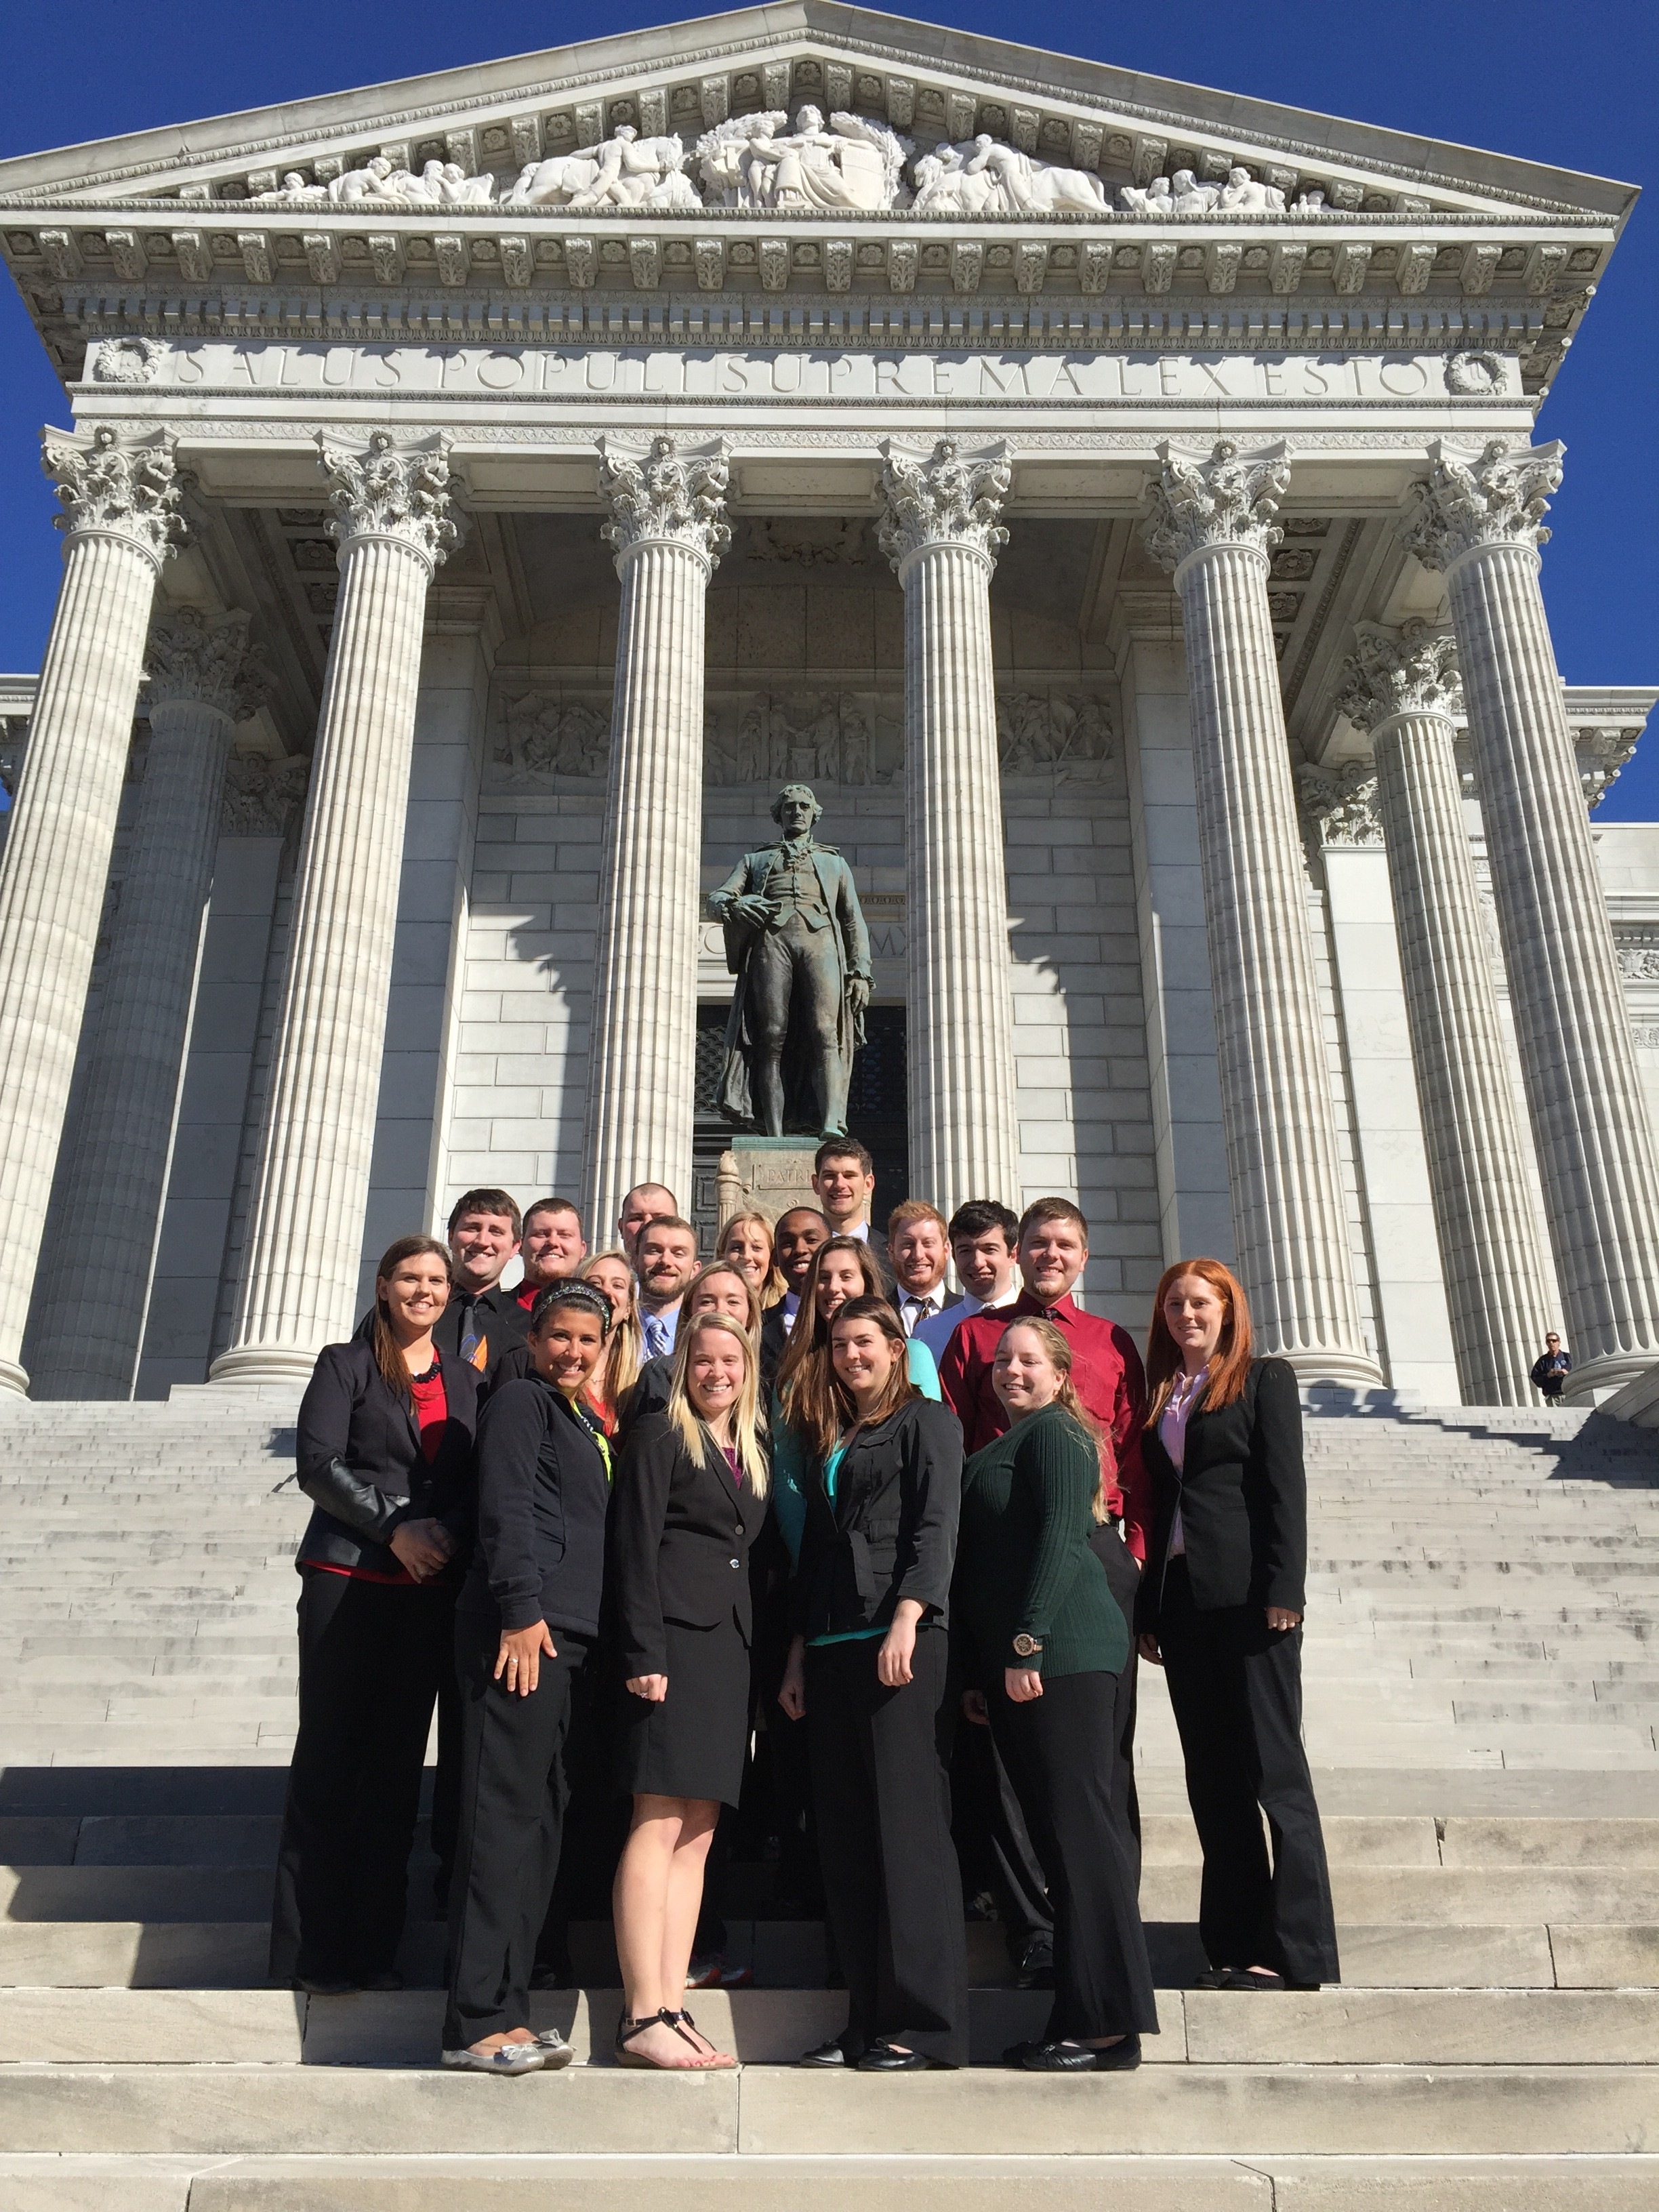 Capitol Day 2015